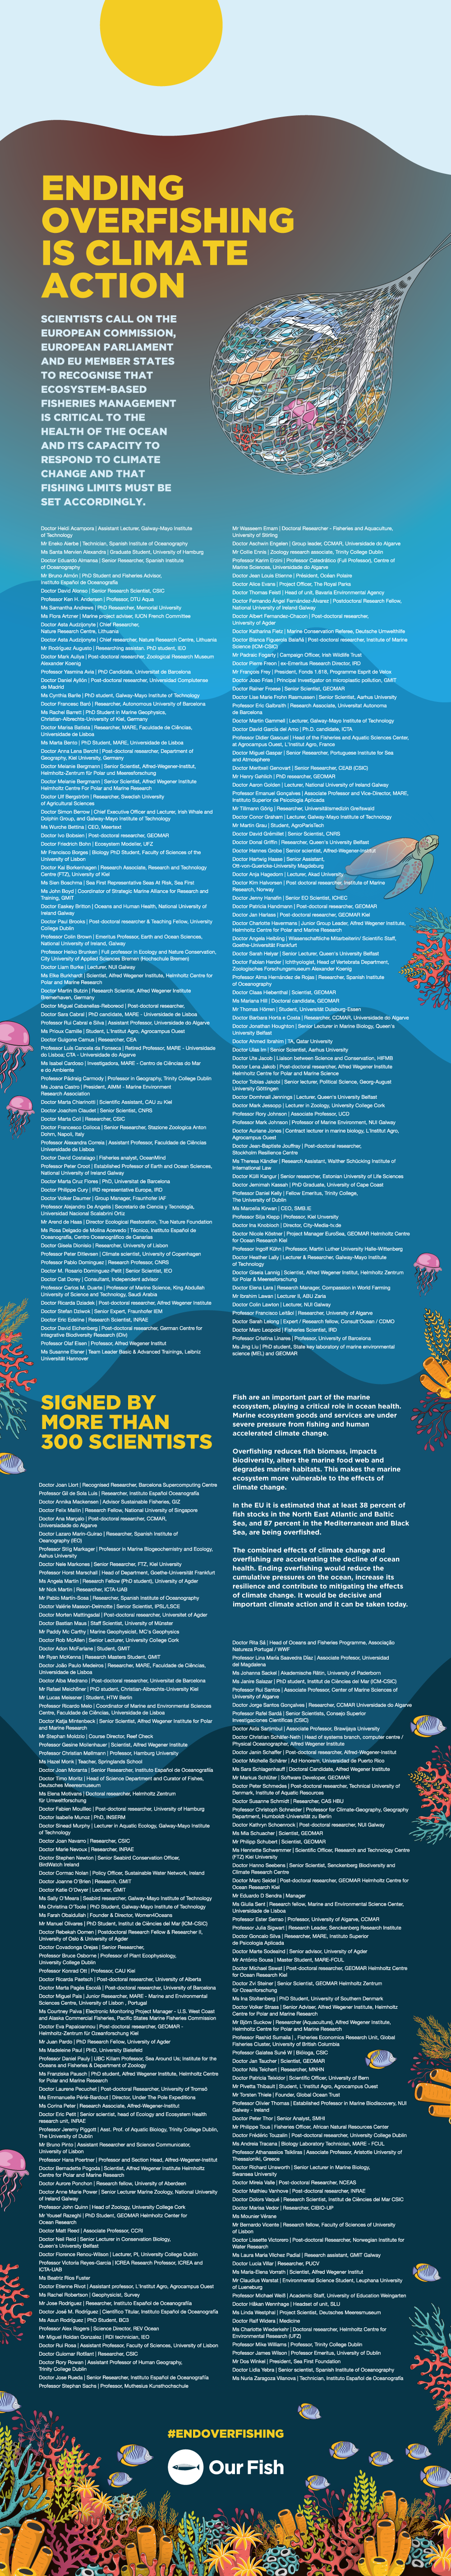 Ending Overfishing is Climate Action - 300 Scientists Calling for EU to End Overfishing - Signatures